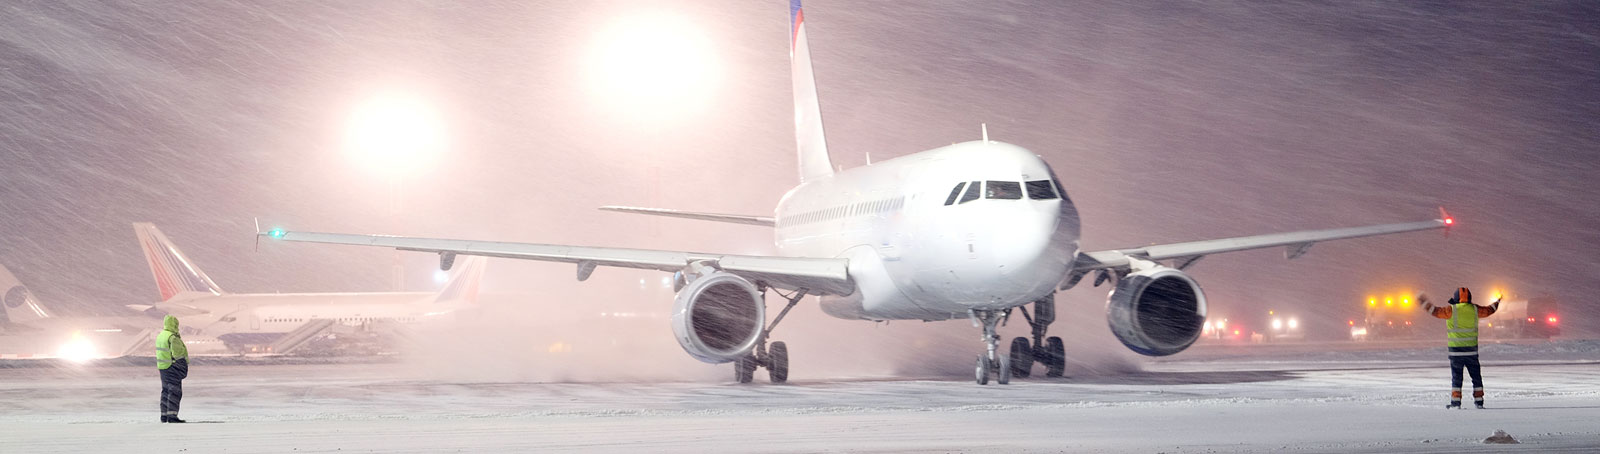 Aviation De-icing Equipment and Clothing